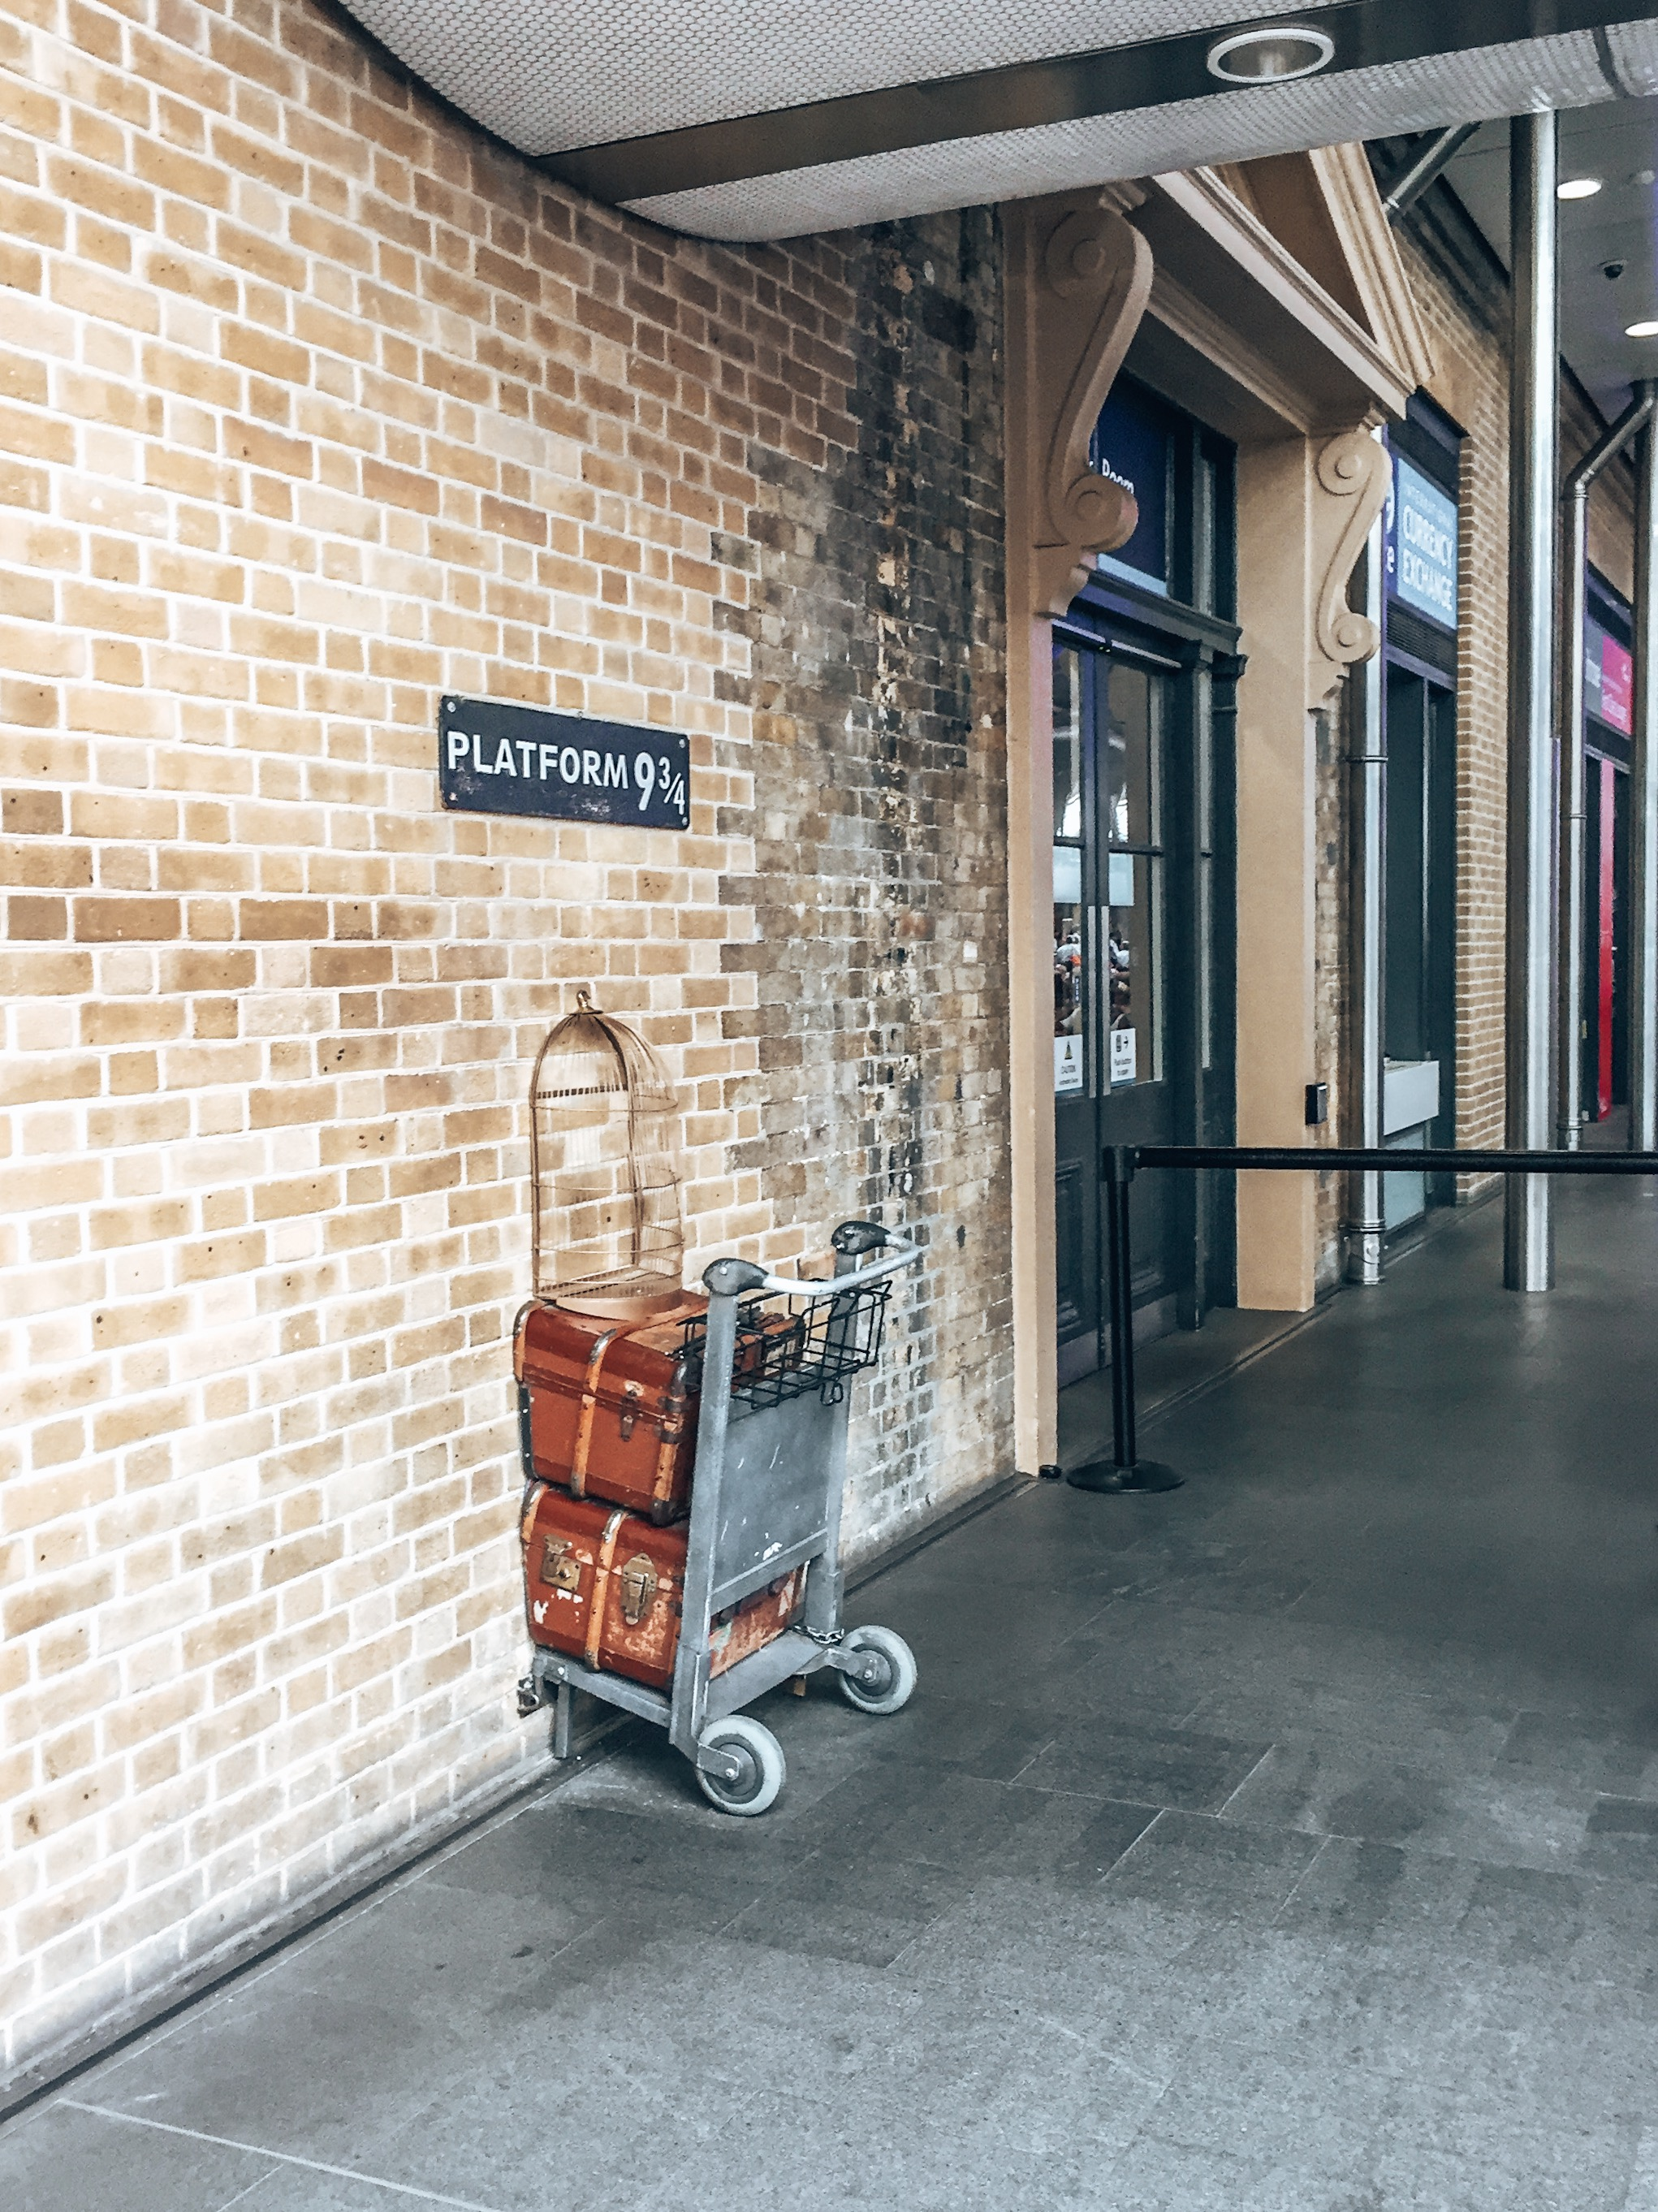 Platform 9 3/4 Harry Potter Kings Cross Station London